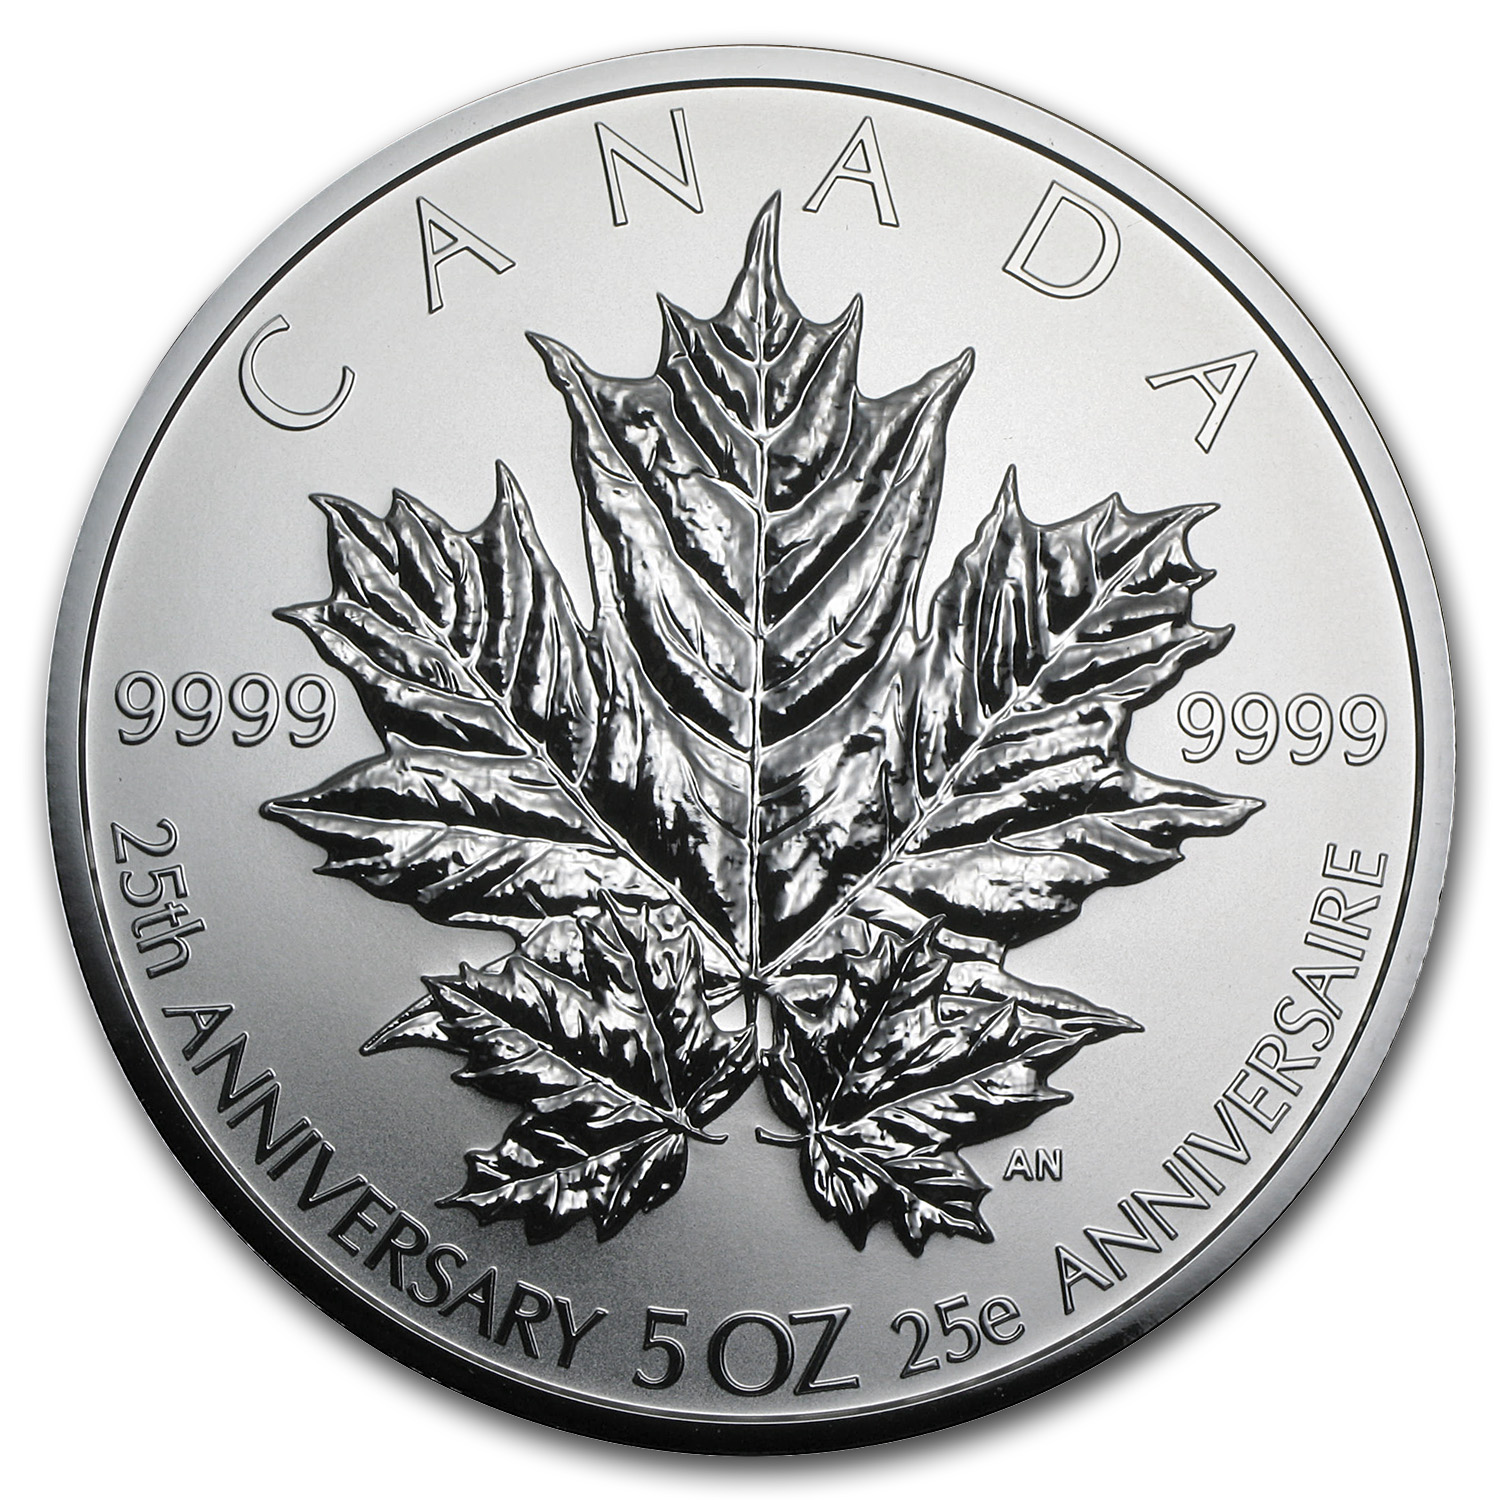 2013 5 oz Silver Canadian $50 - 25th Anniv. of the Silver Maple